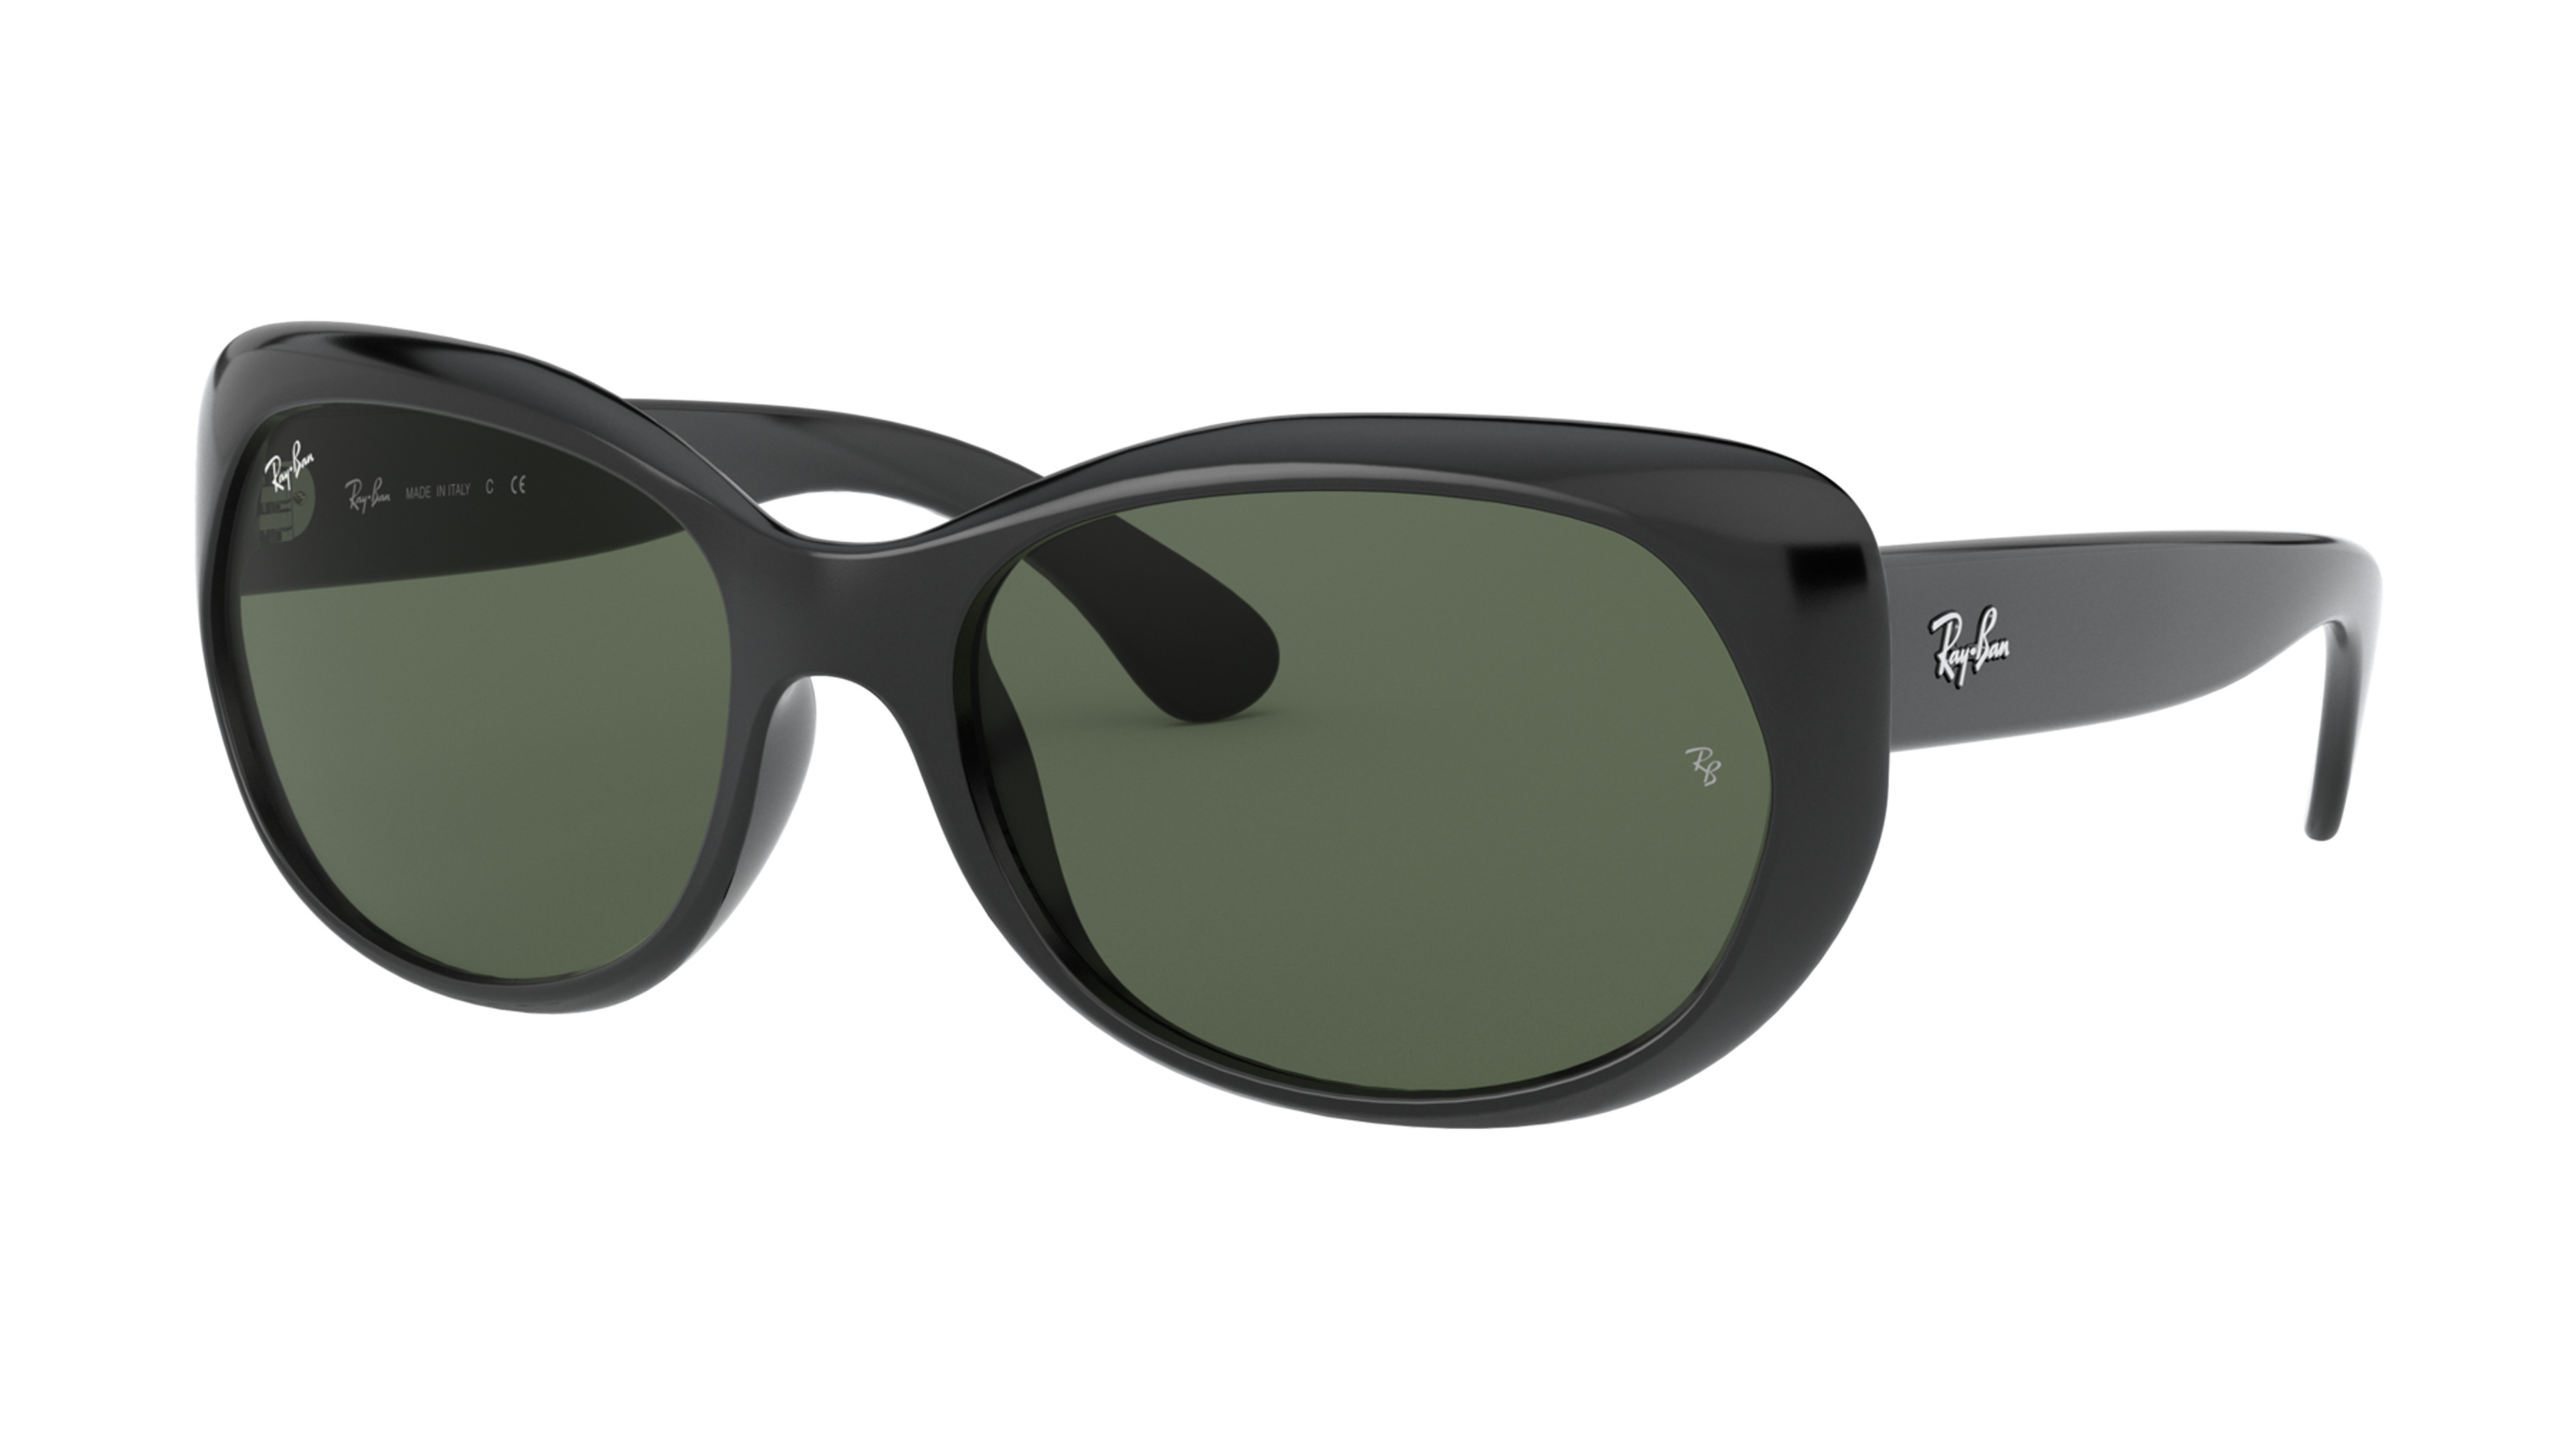 8056597132985-angle-ray-ban-sonnenbrille-0RB4325-601-71